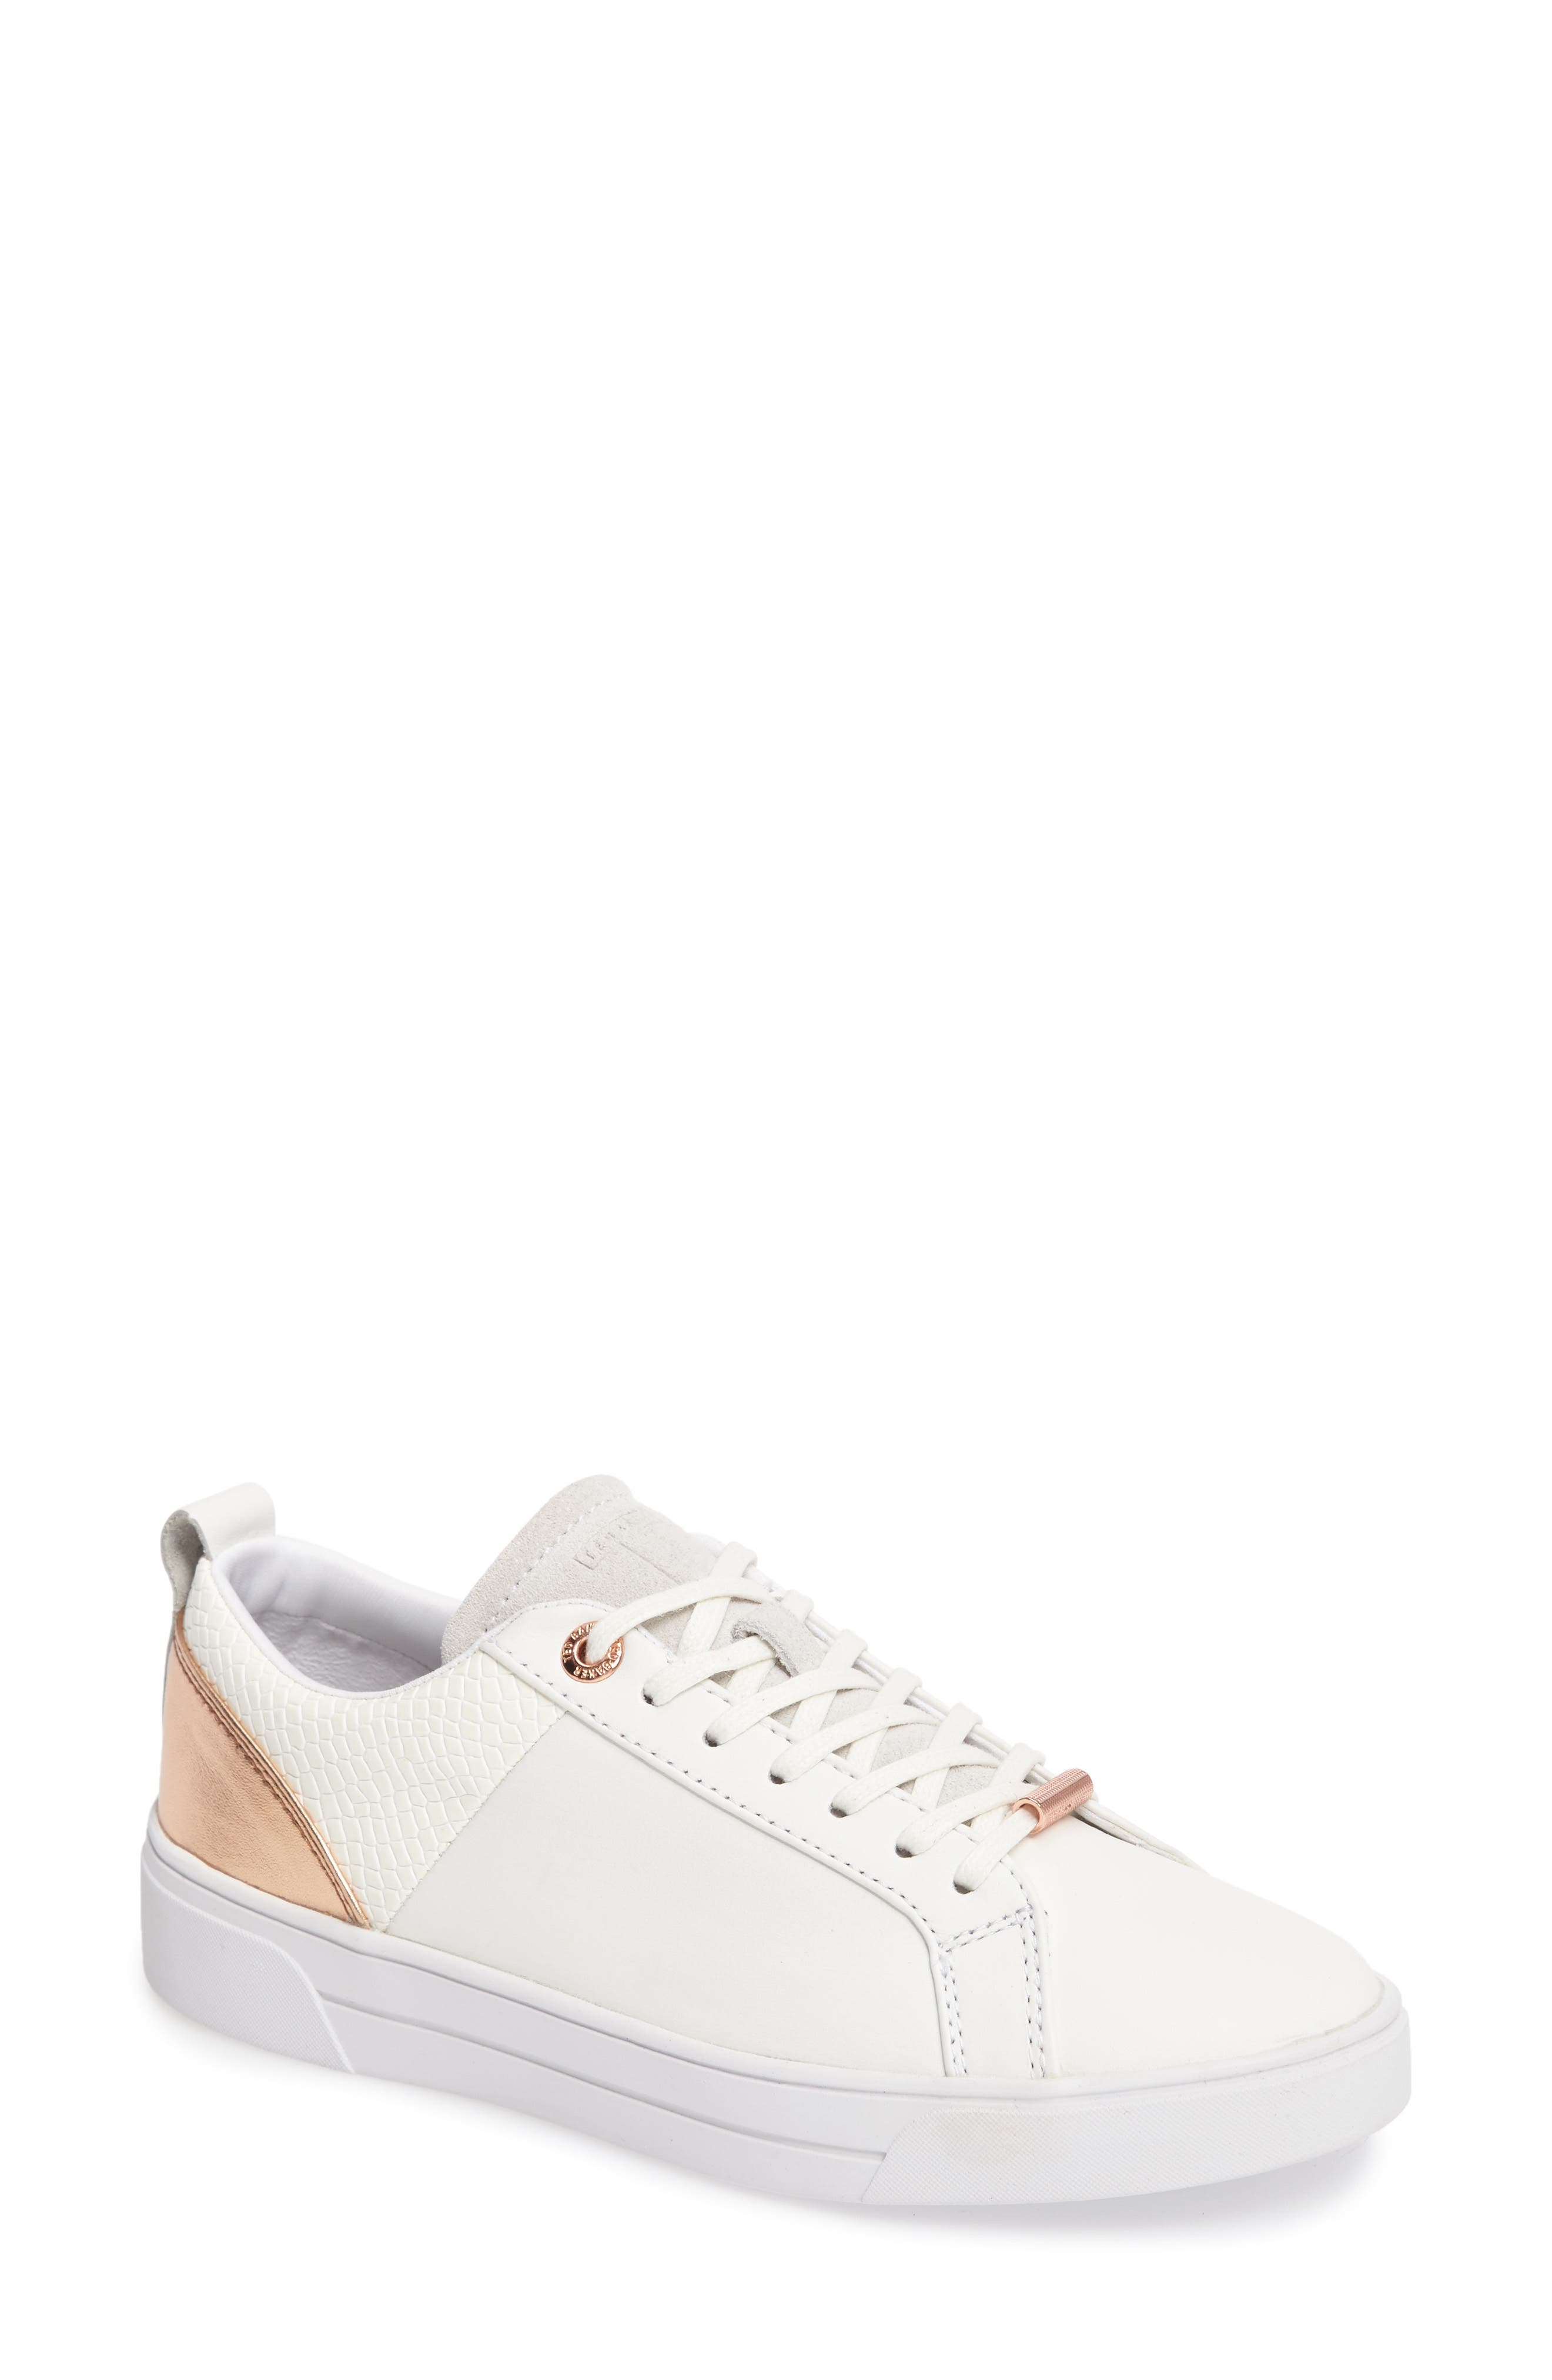 Kulei Lace-Up Sneaker,                         Main,                         color, 112